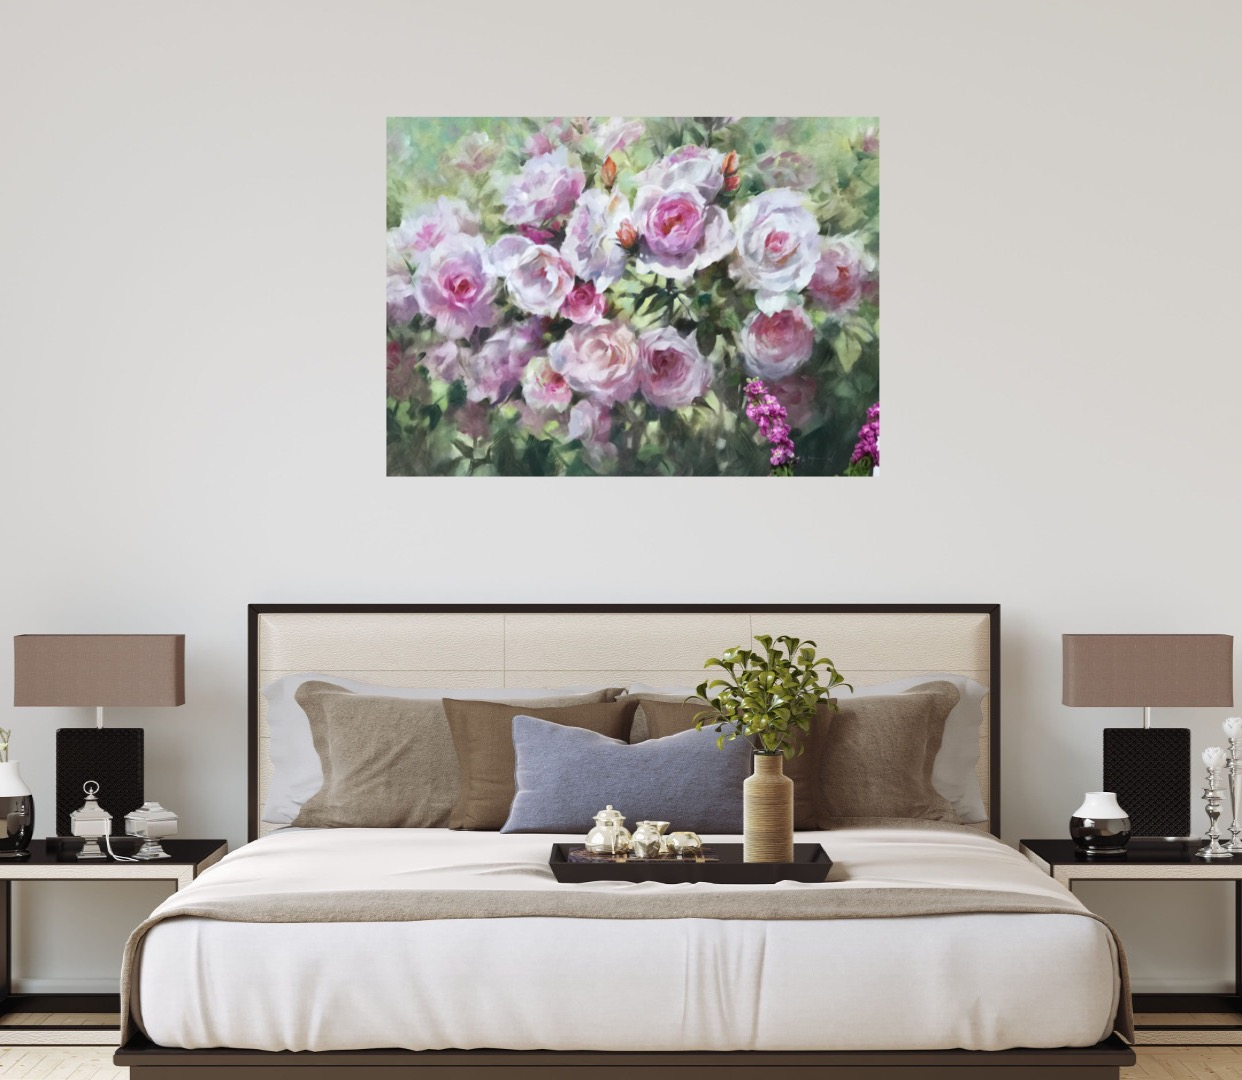 Pink Roses at Kew is an original impressionistic oil painting by Trevor Waugh. The soft pink tones of the roses contrast with the green foliage bringing a layered aspect to the canvas.